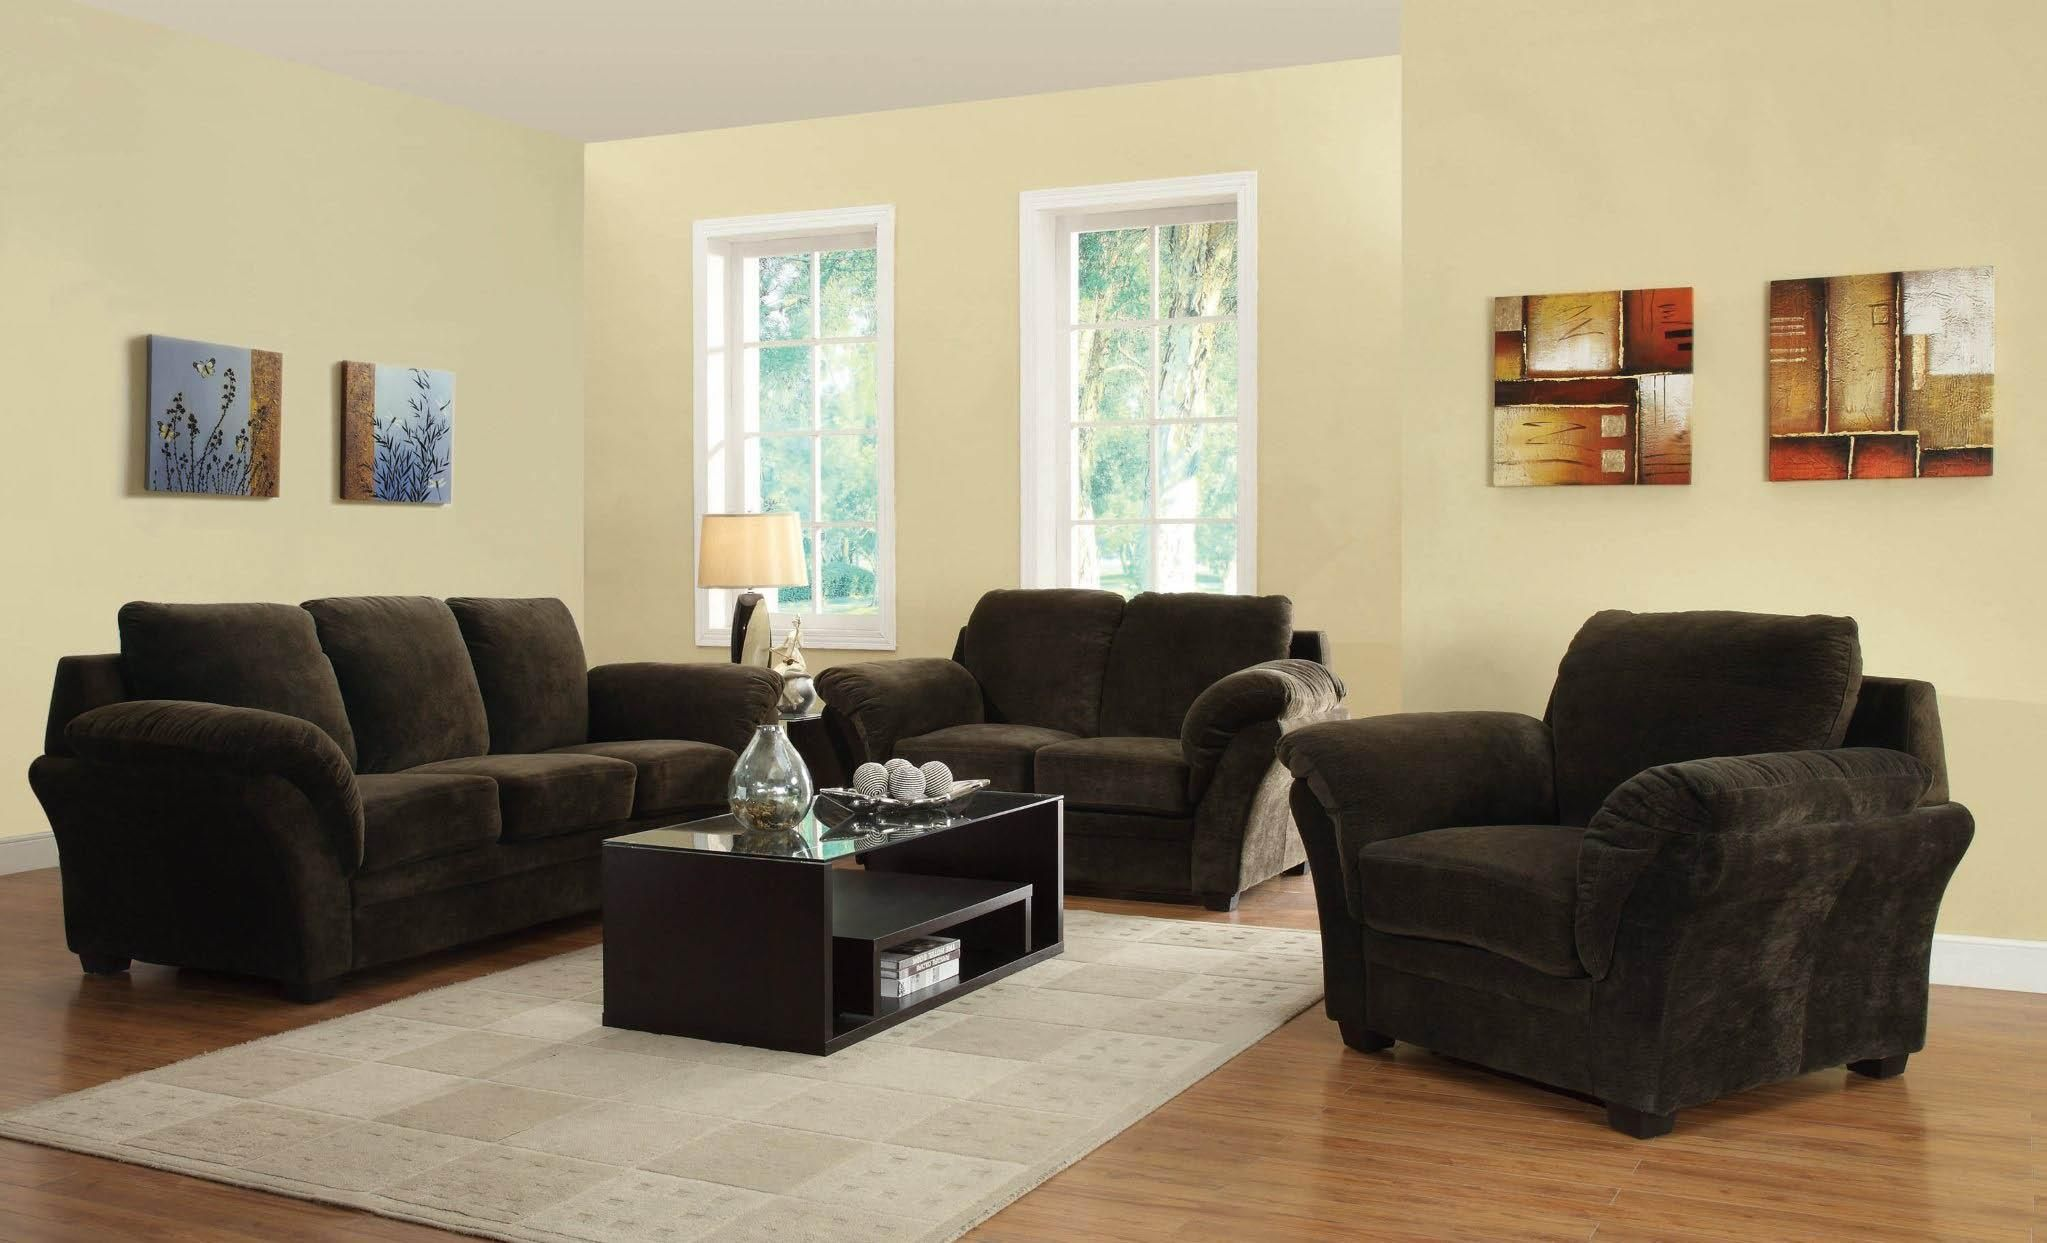 503221set Silas Casual Sofa With Knife Edged Cushions And Pillow Arms Get Your Friends Discount Furniture Living Room Sets 3 Piece Living Room Set